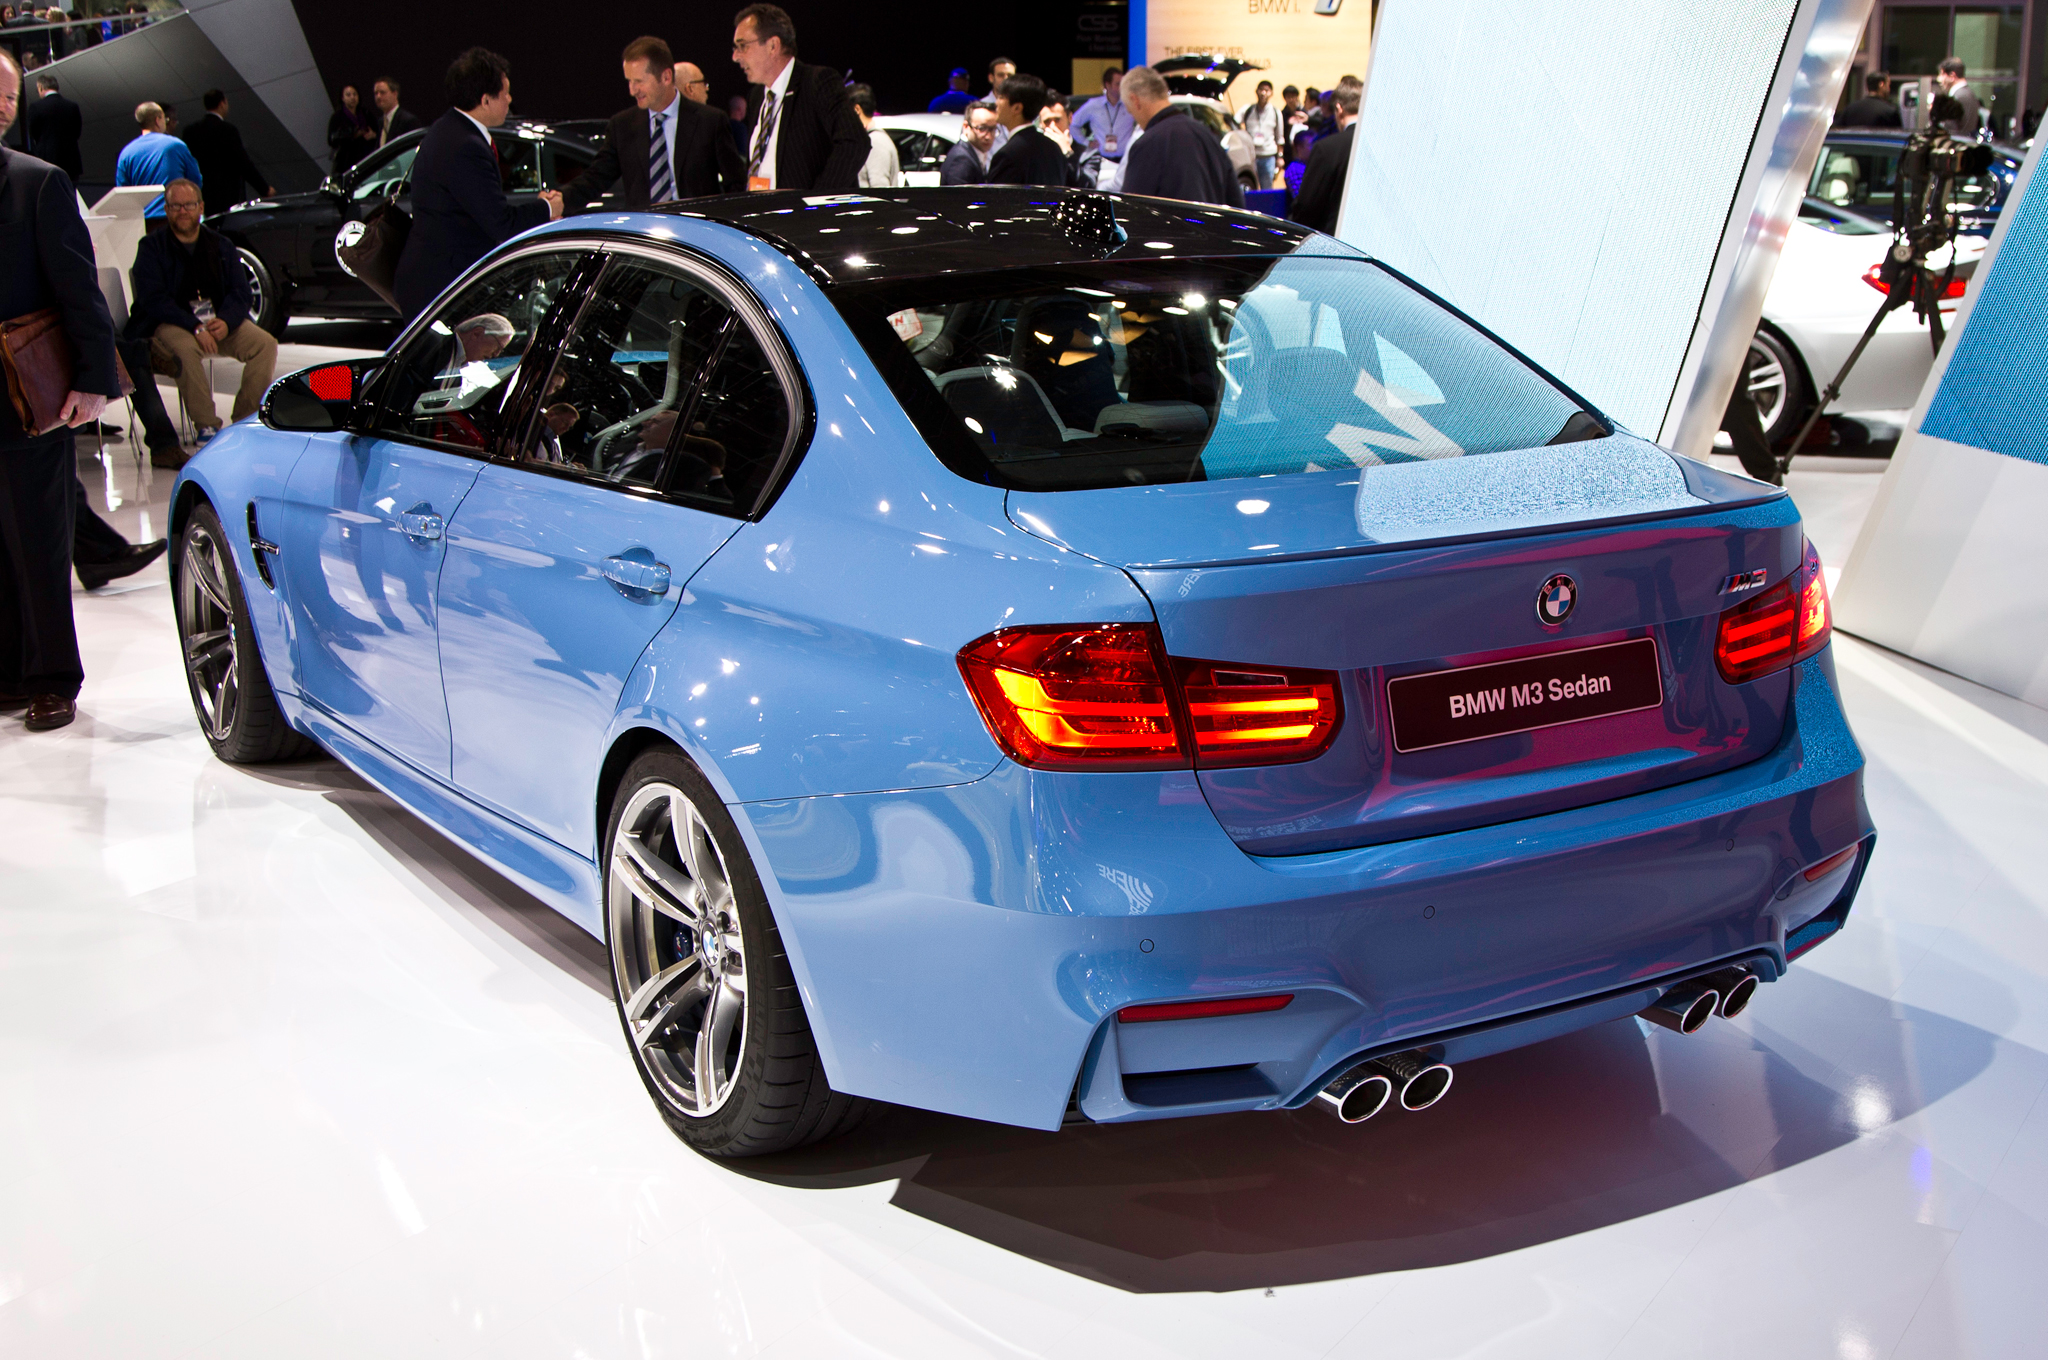 2015 Bmw M3 Rear Side View (Photo 51 of 55)